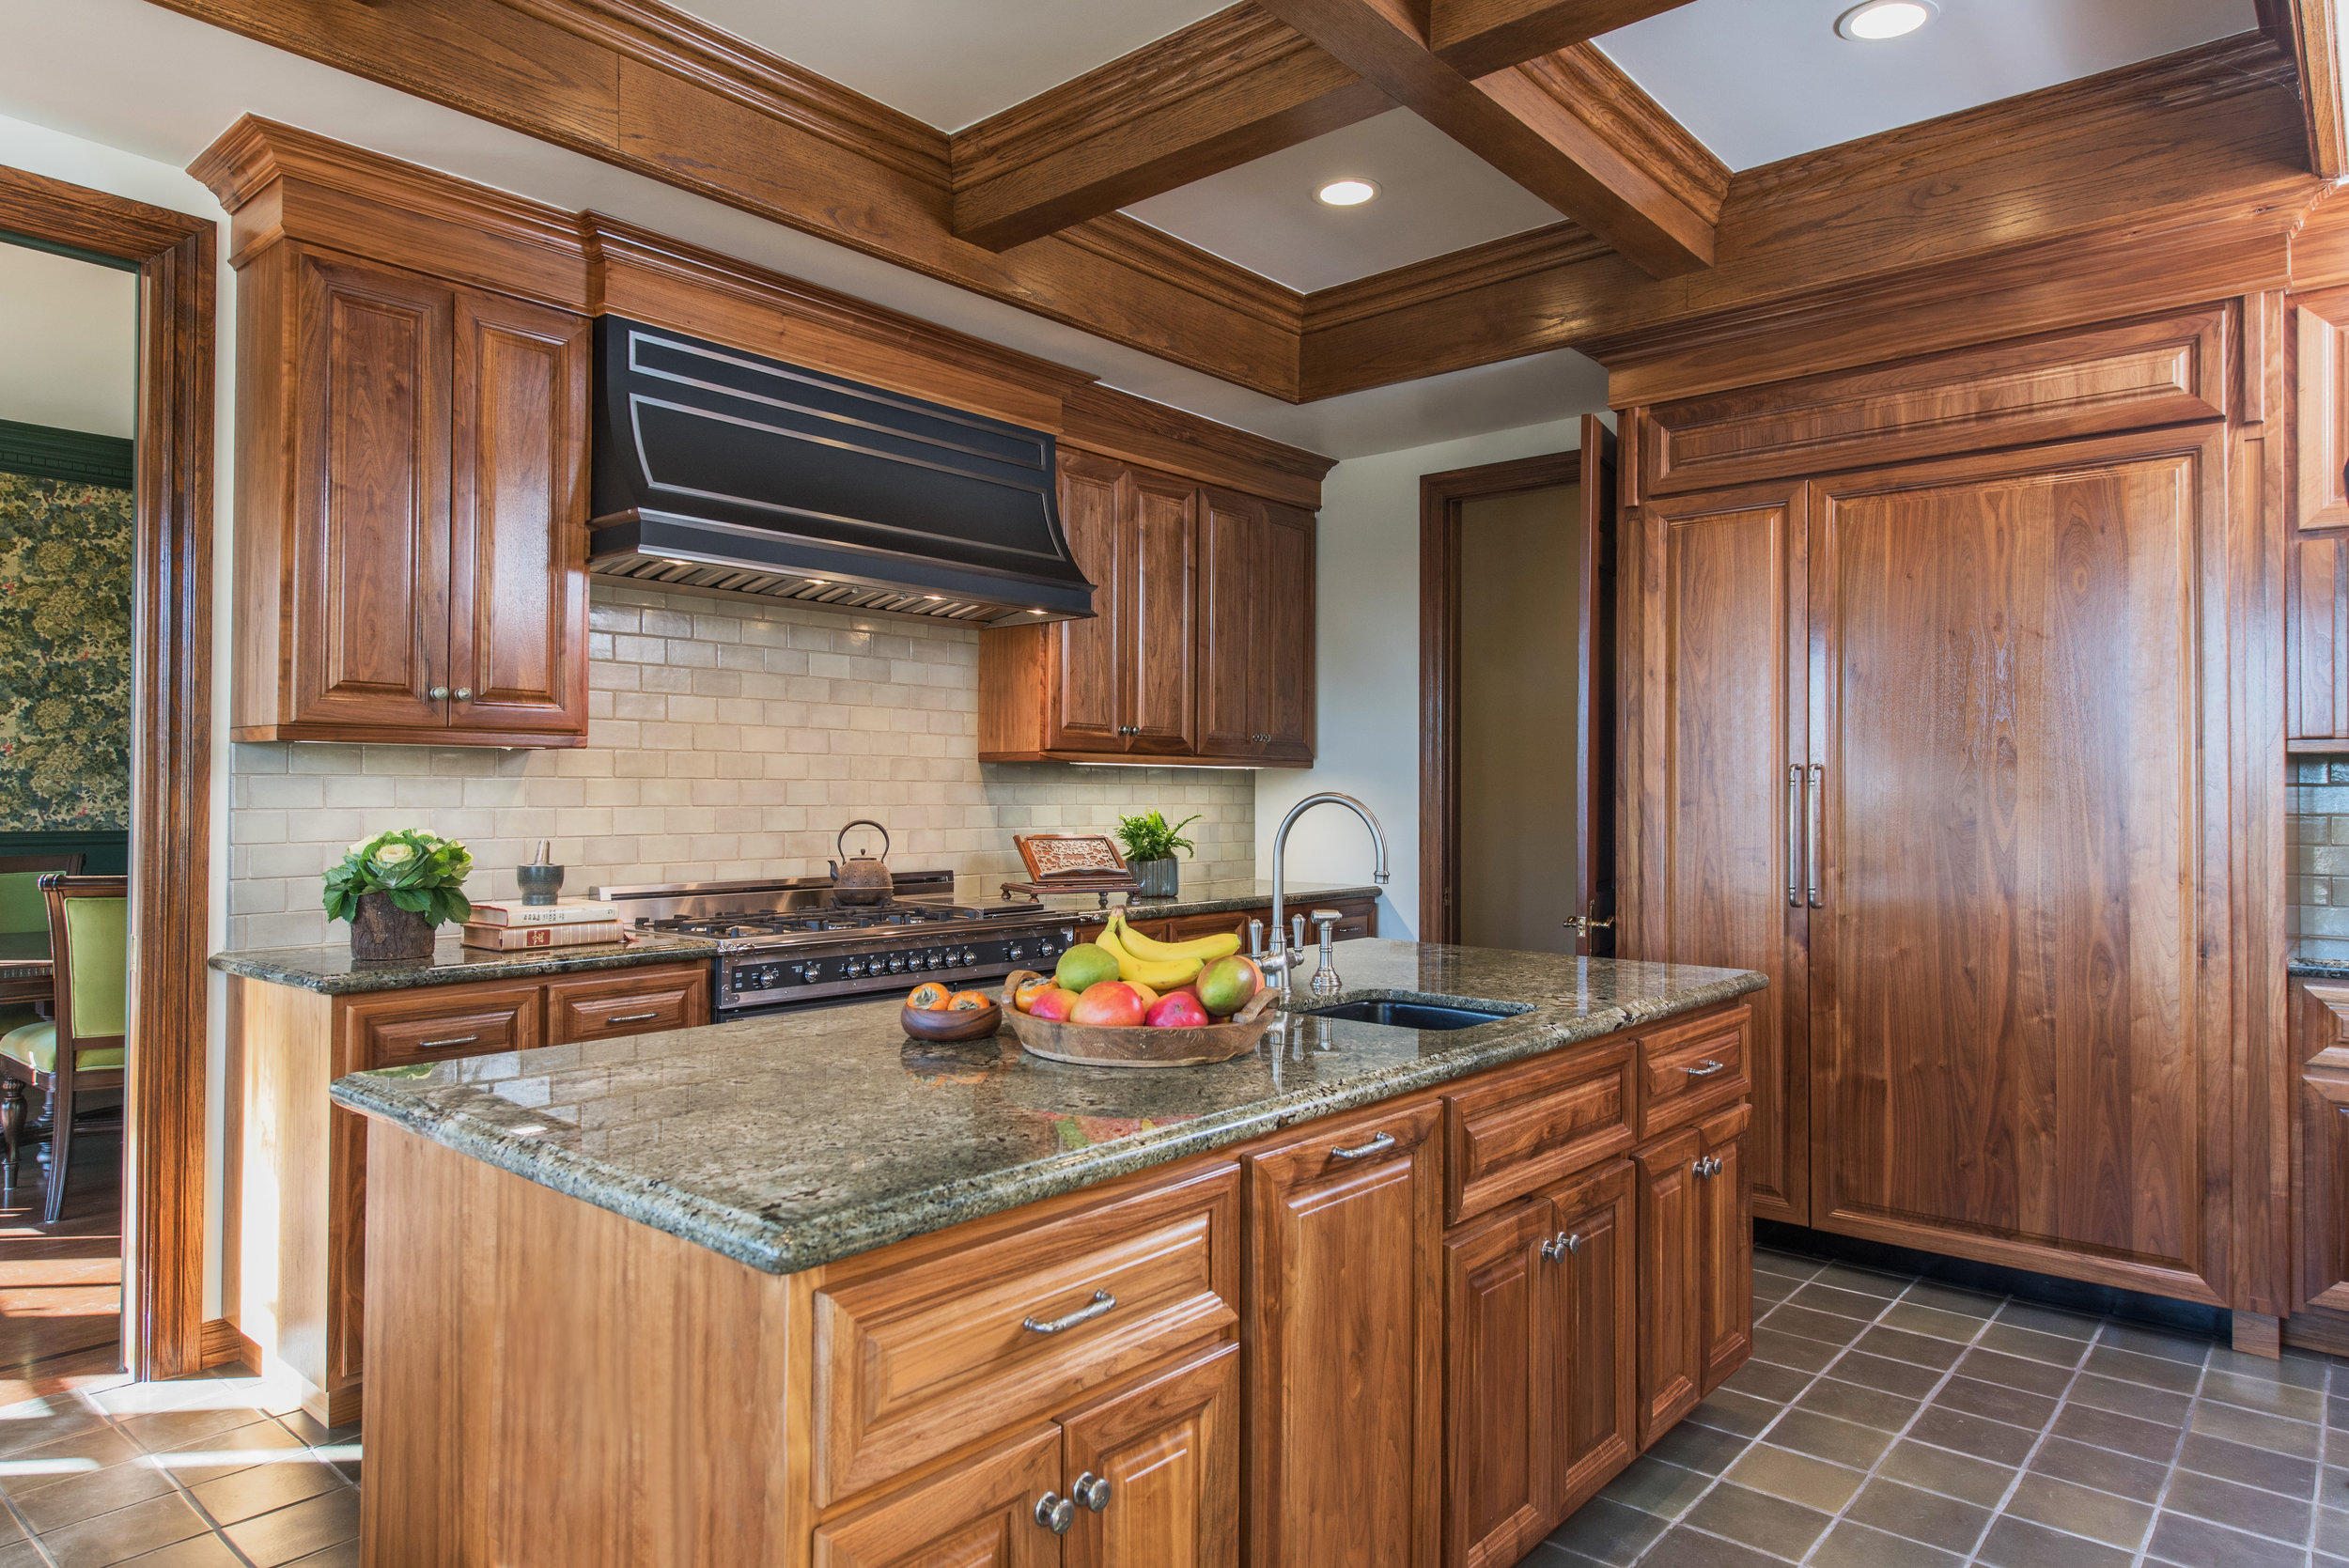 walnut cabinets kitchen ways to conserve water in the sarah barnard design traditional a pacific original oak coffered ceiling was restored complement bespoke american center island is outfitted deep green